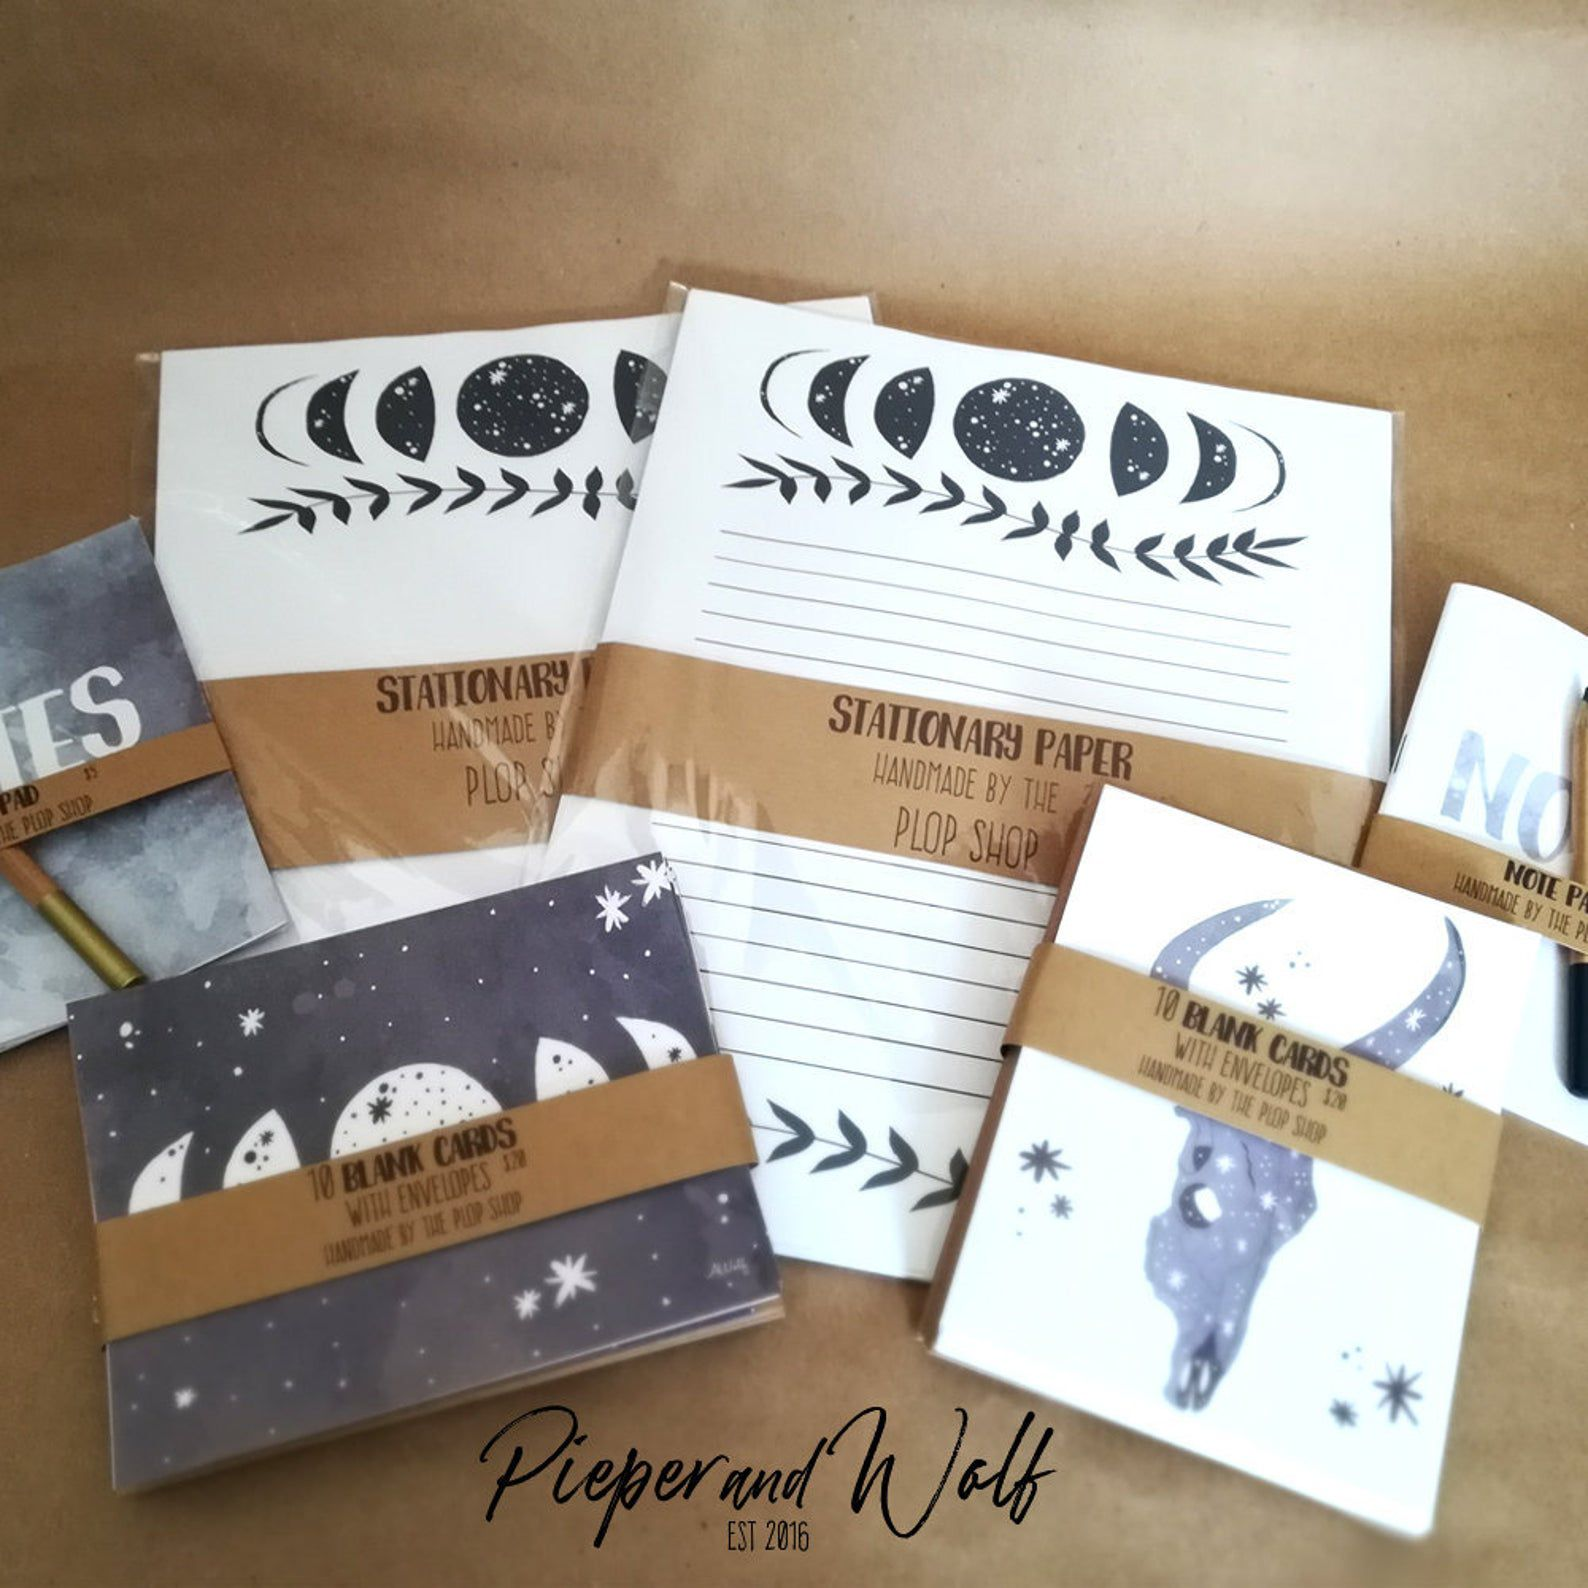 Cards and paper featuring moon phases and desert skulls.